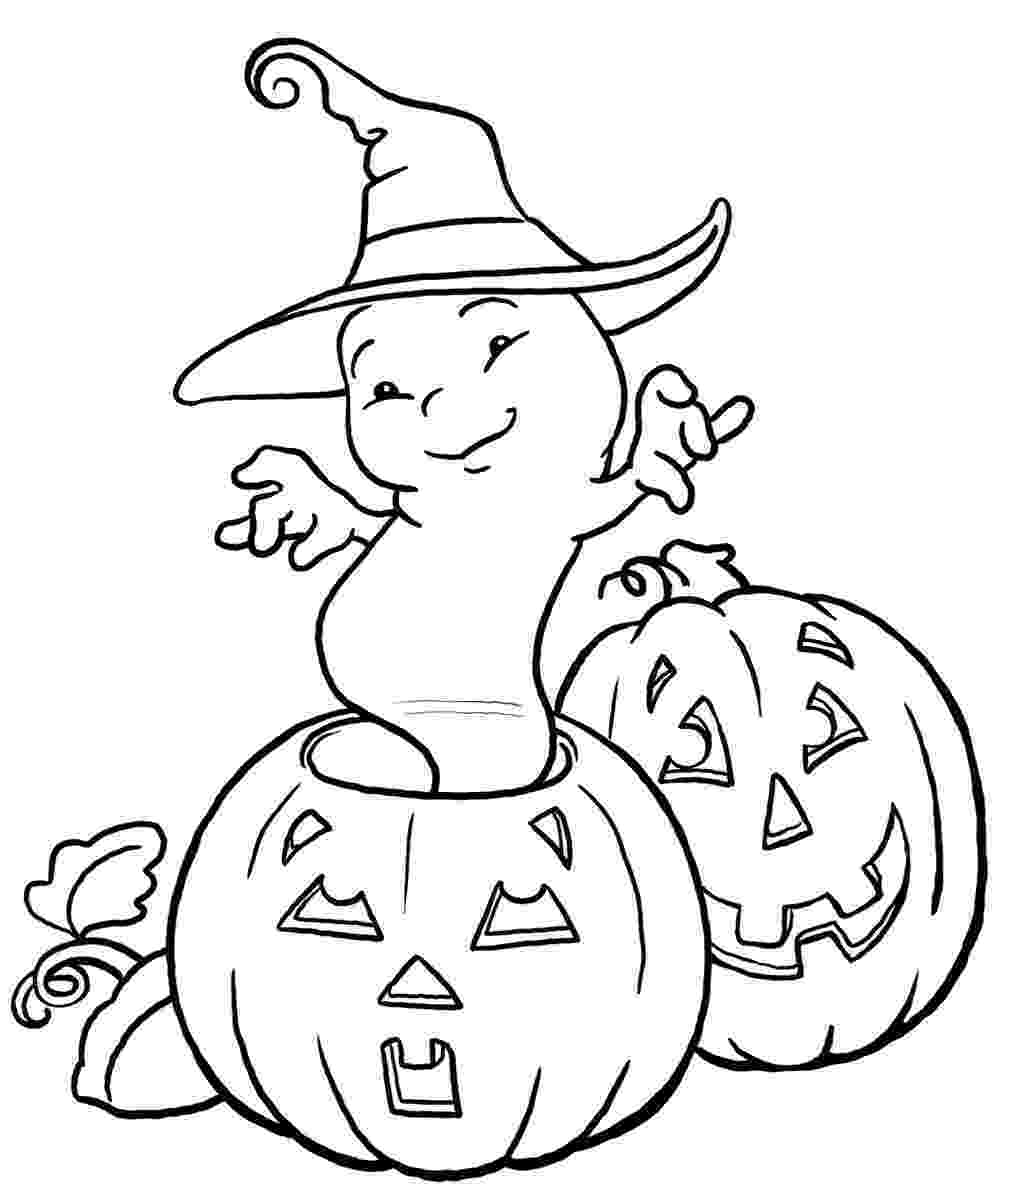 ghost coloring pages smiling halloween ghost coloring page free printable pages ghost coloring